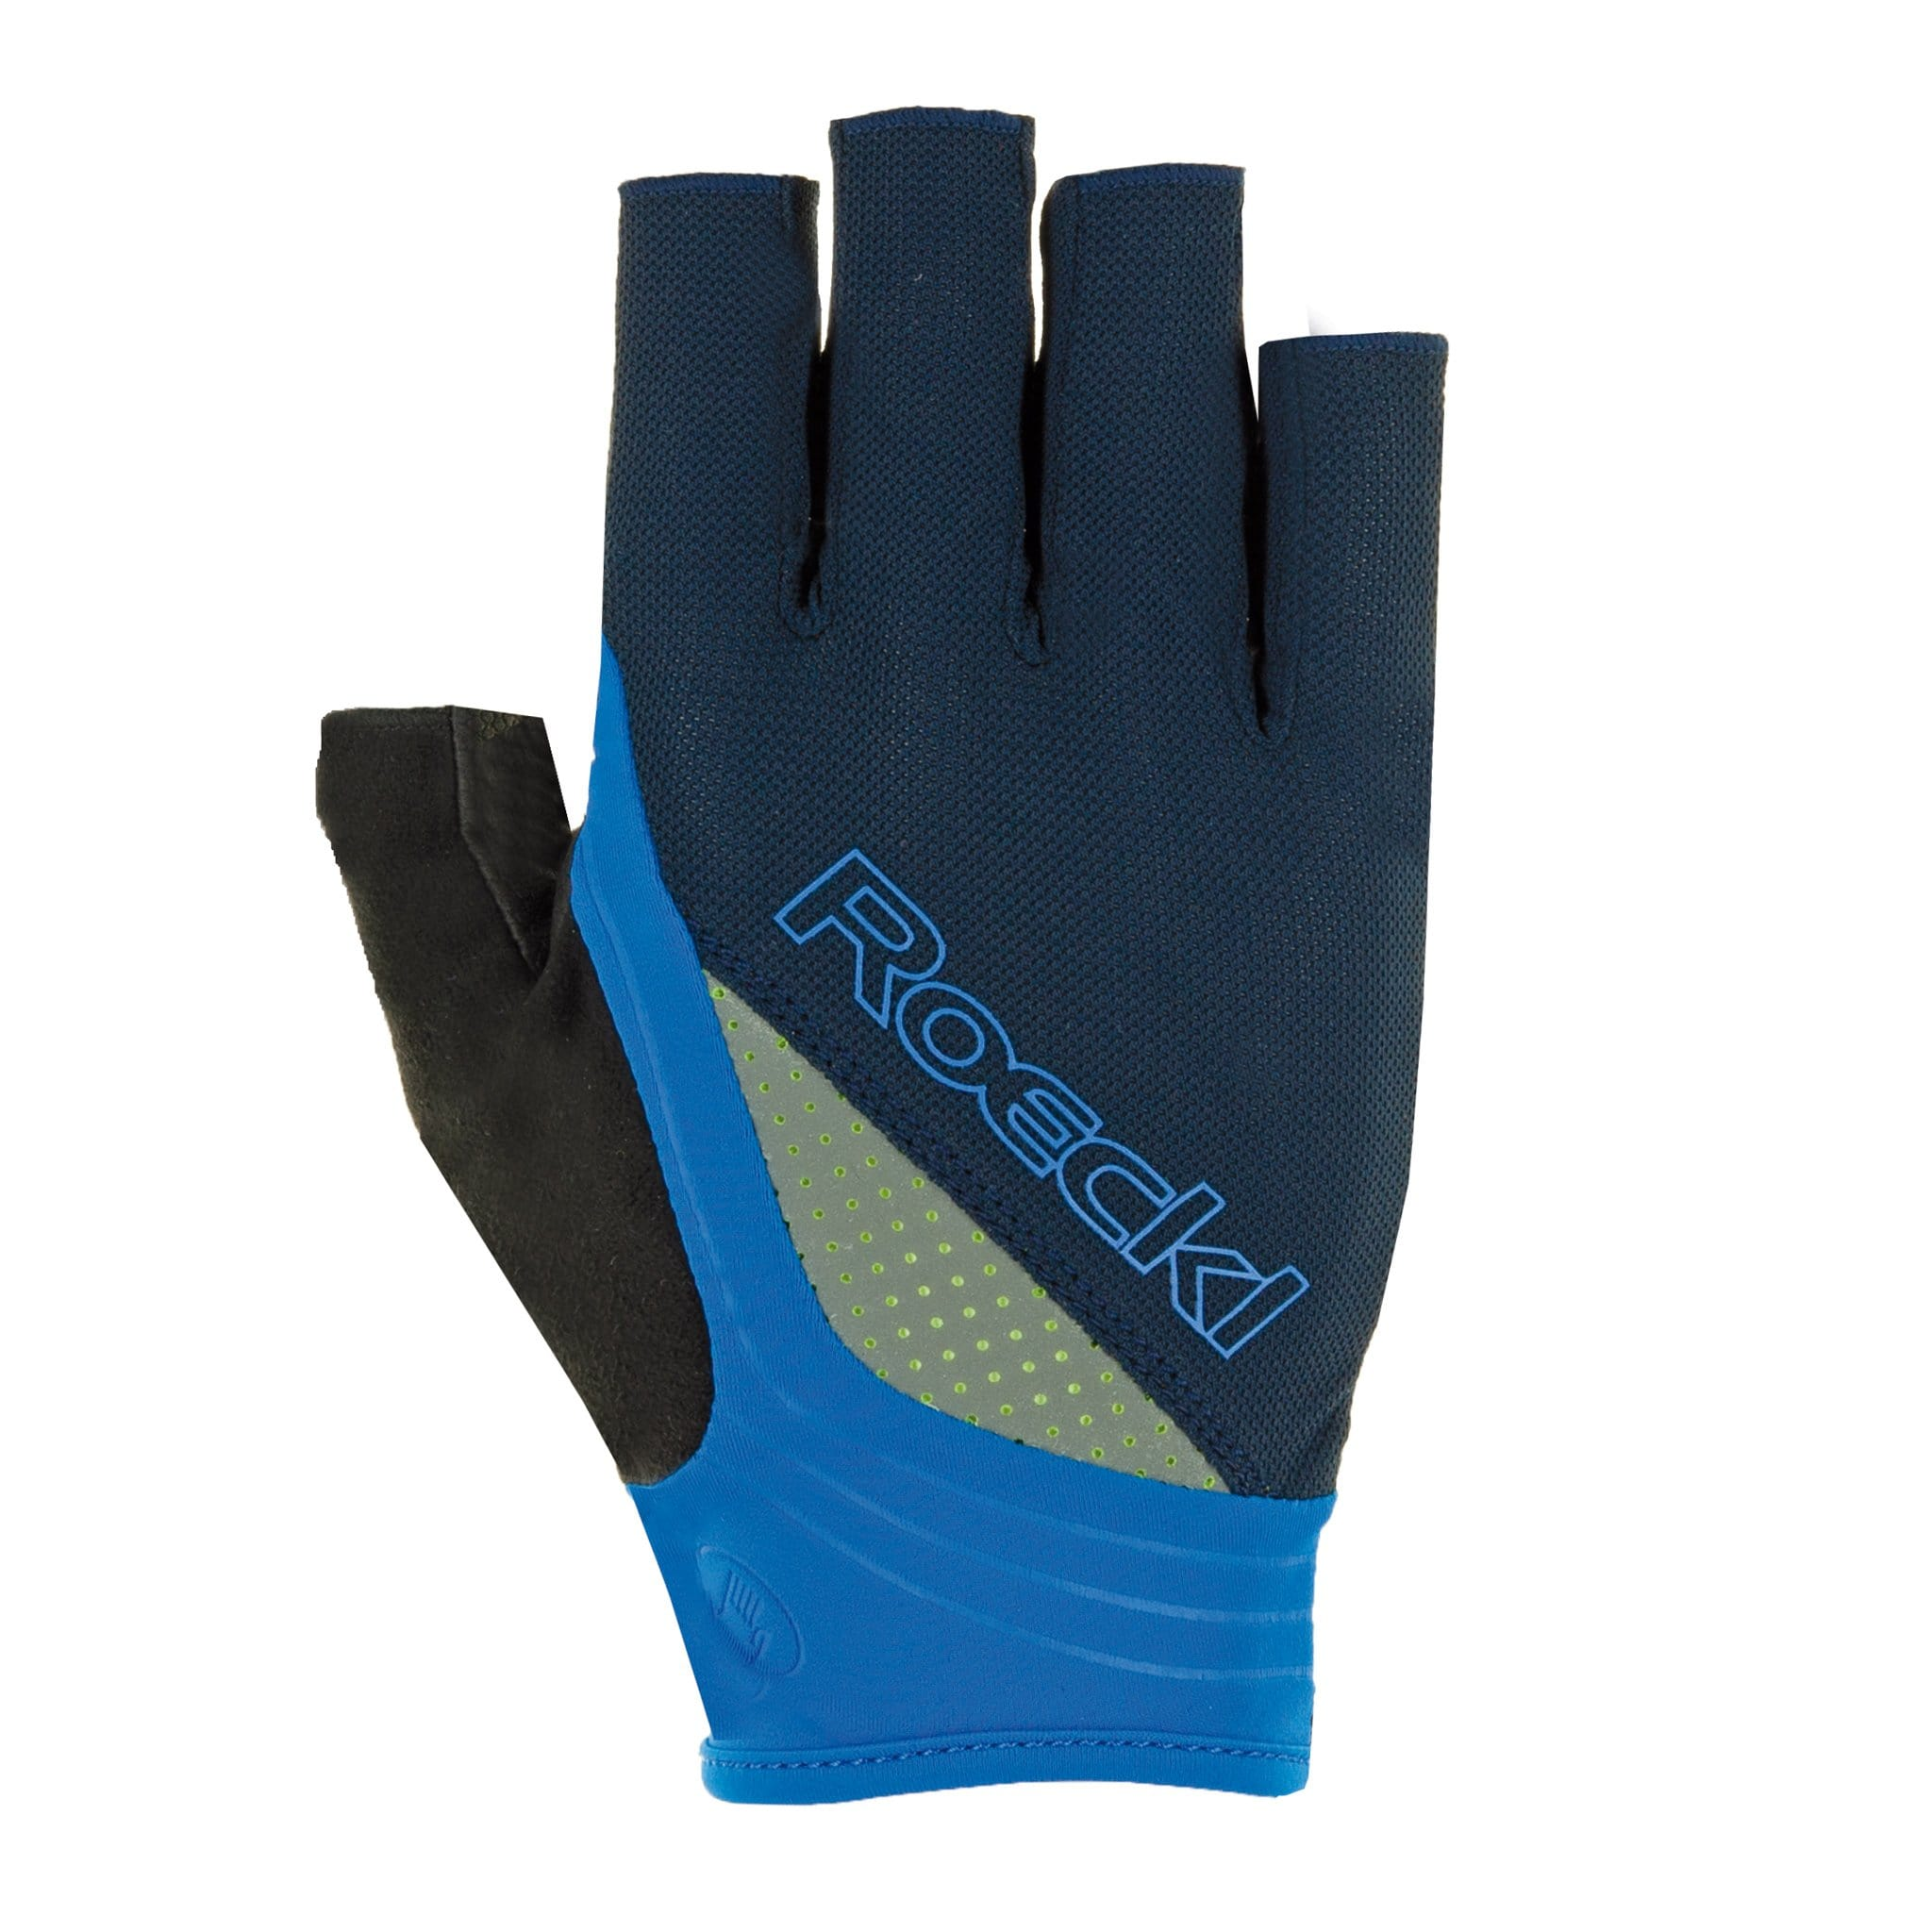 Roeckl Miami Gloves 3301-281 Navy